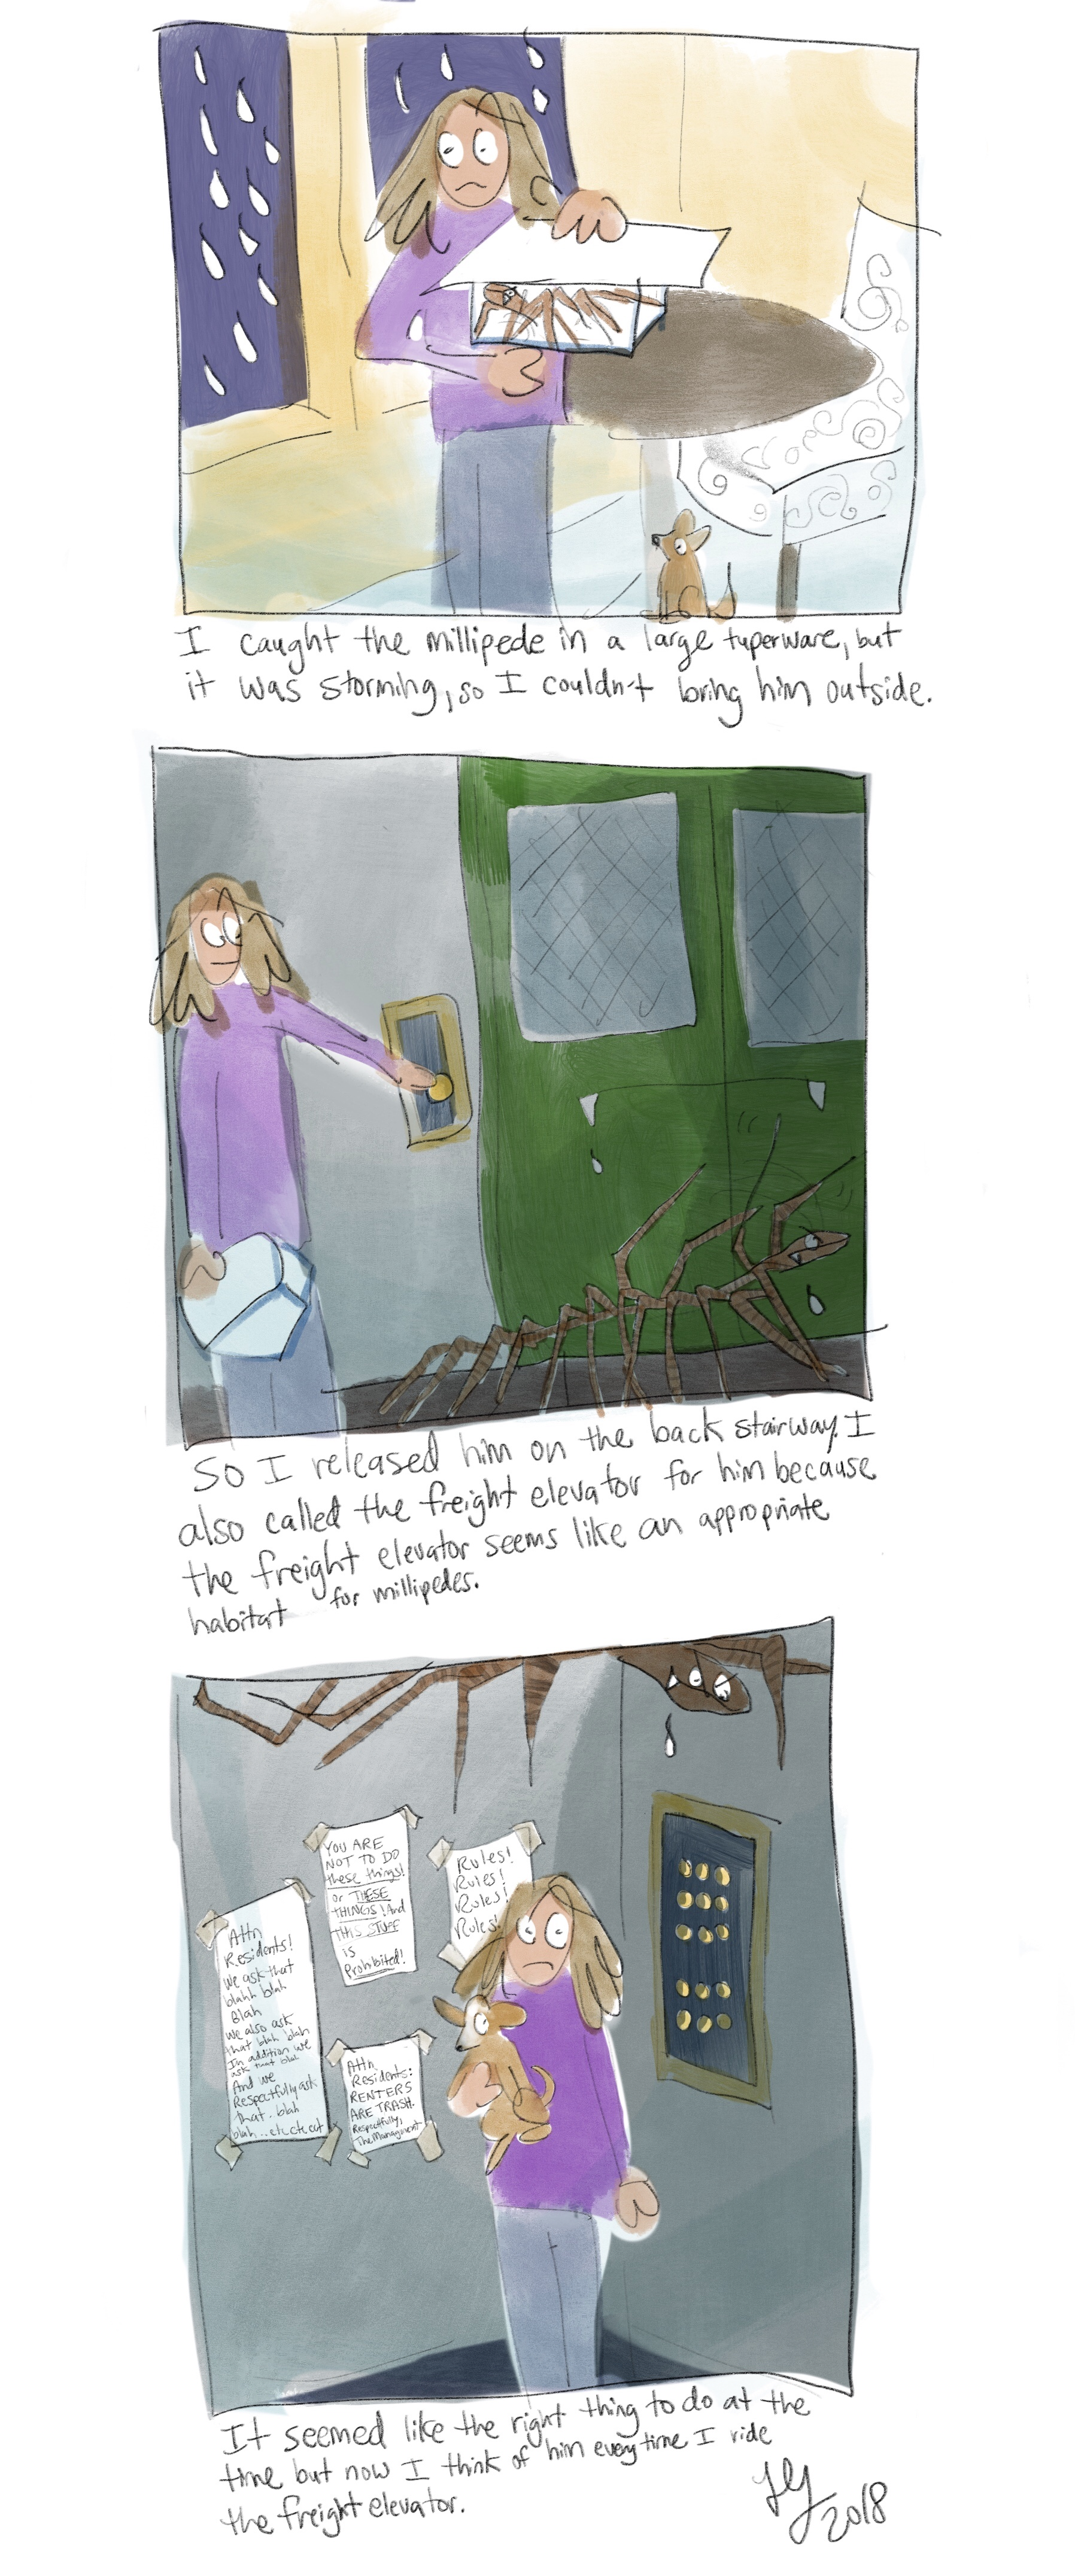 This is a comic about the time that I caught a big millipede during a storm. I couldn't put him outside so I put him in the freight elevator. Now I always think about him when I ride the freight elevator. This is an autobiographical comic.